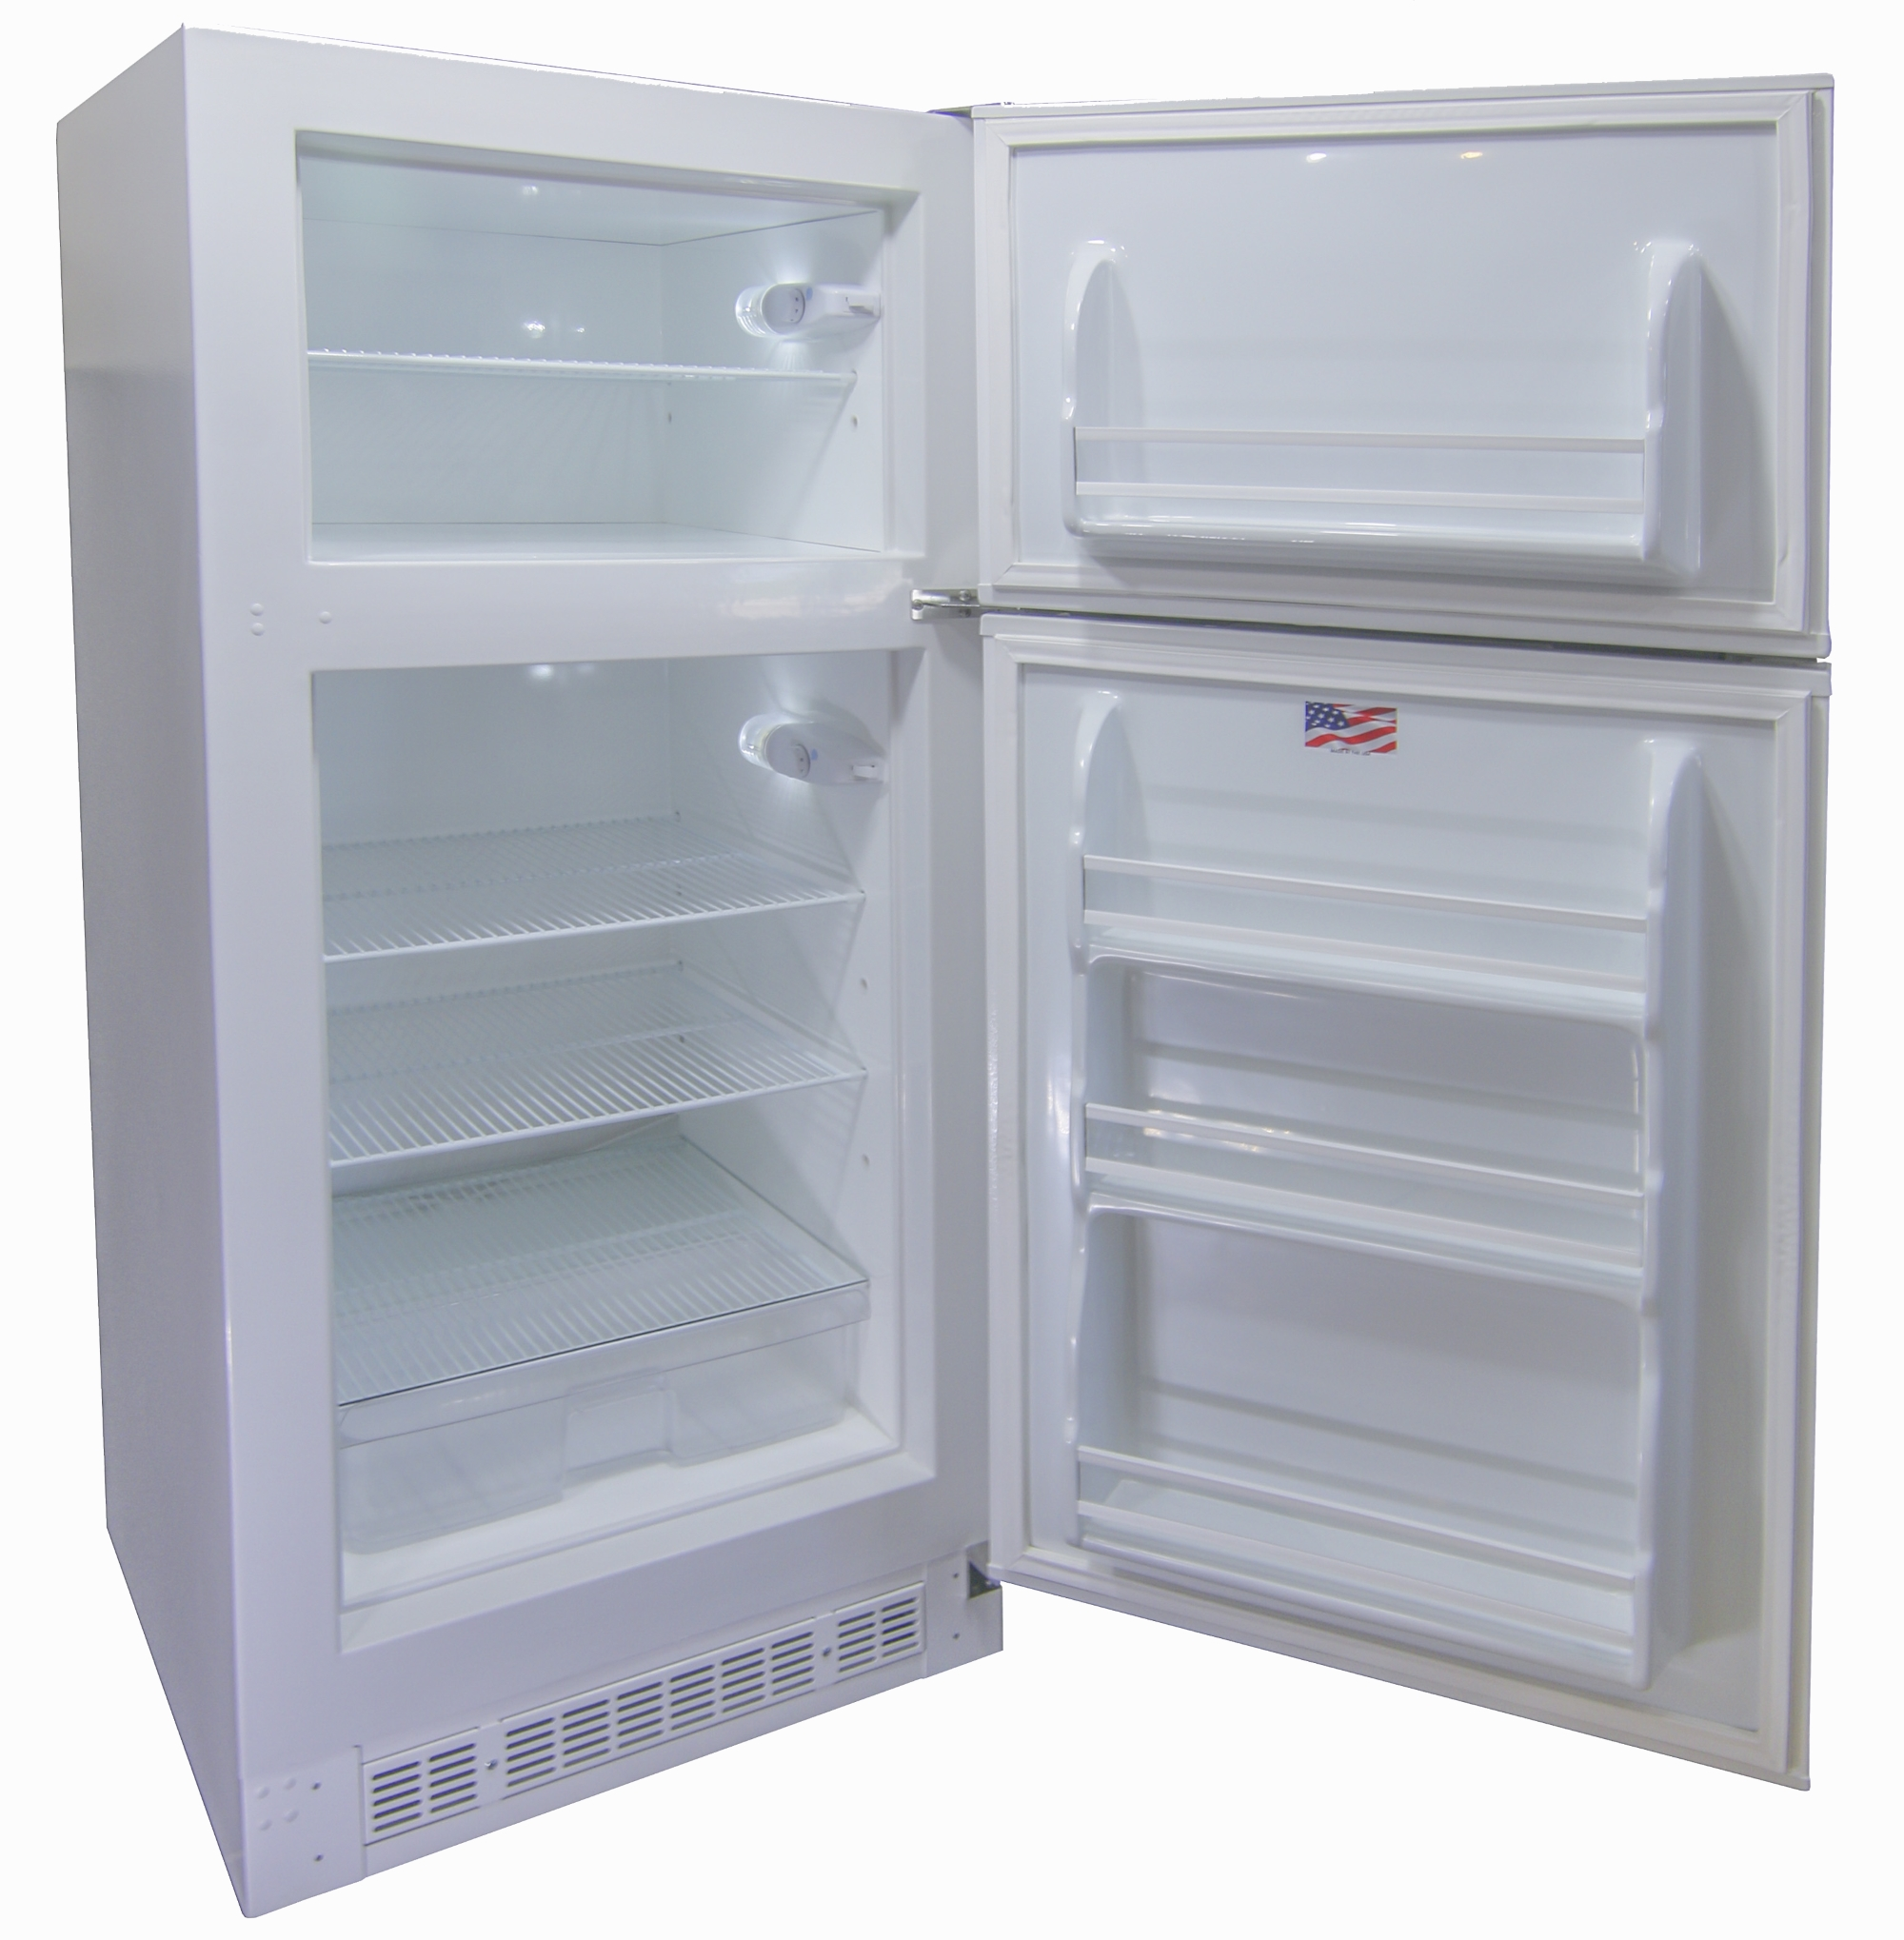 Full Size Solar Powered Dc Refrigerator Freezer For Off